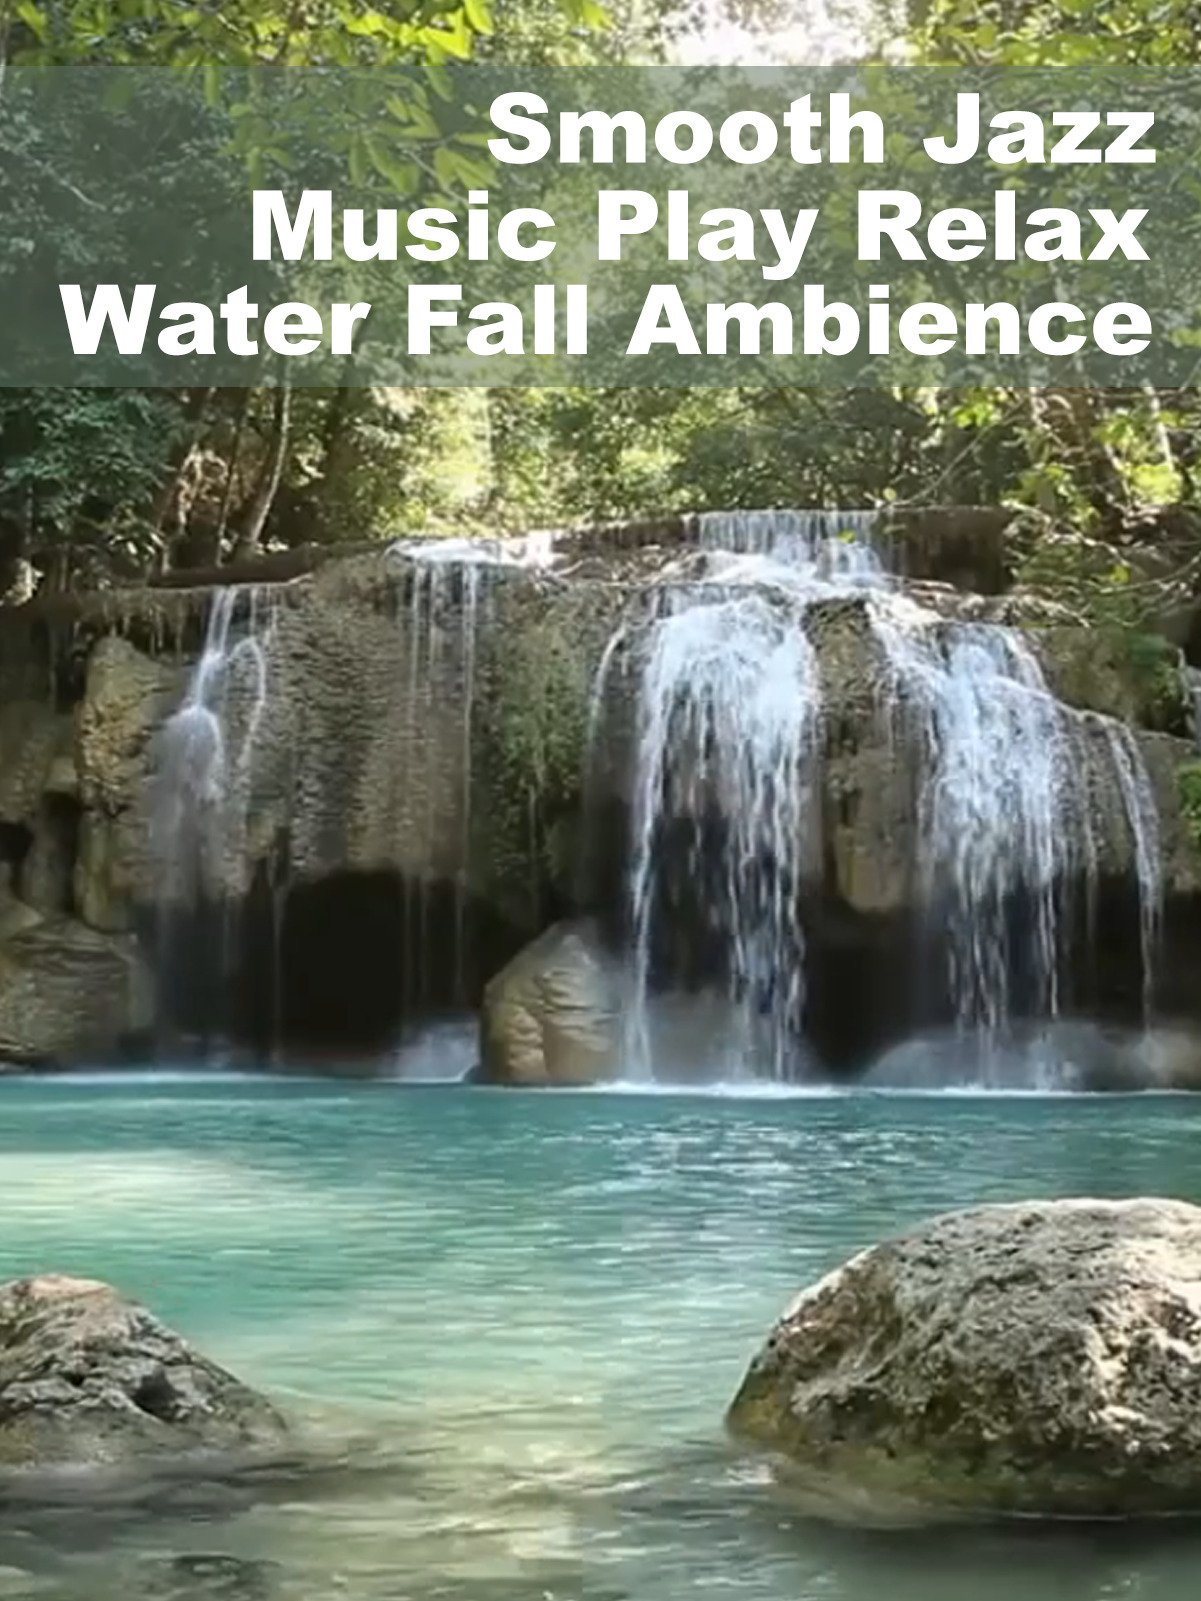 Smooth Jazz Music Play Relax Water Fall Ambience on Amazon Prime Instant Video UK